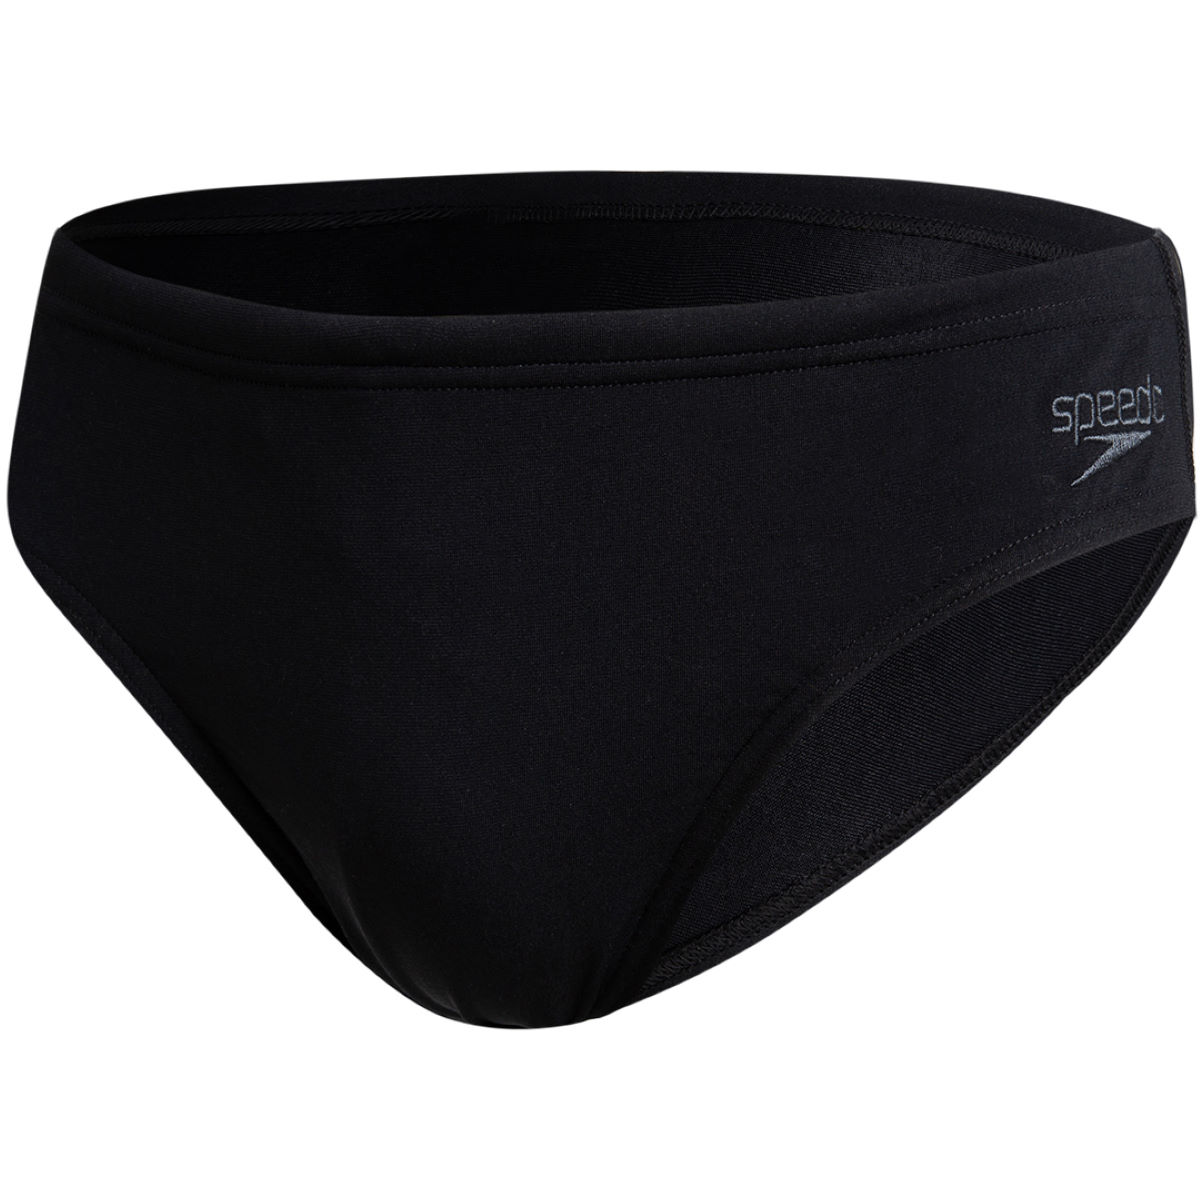 Speedo Essentials Endurance + 7cm Brief - Bañadores slip de Speedo